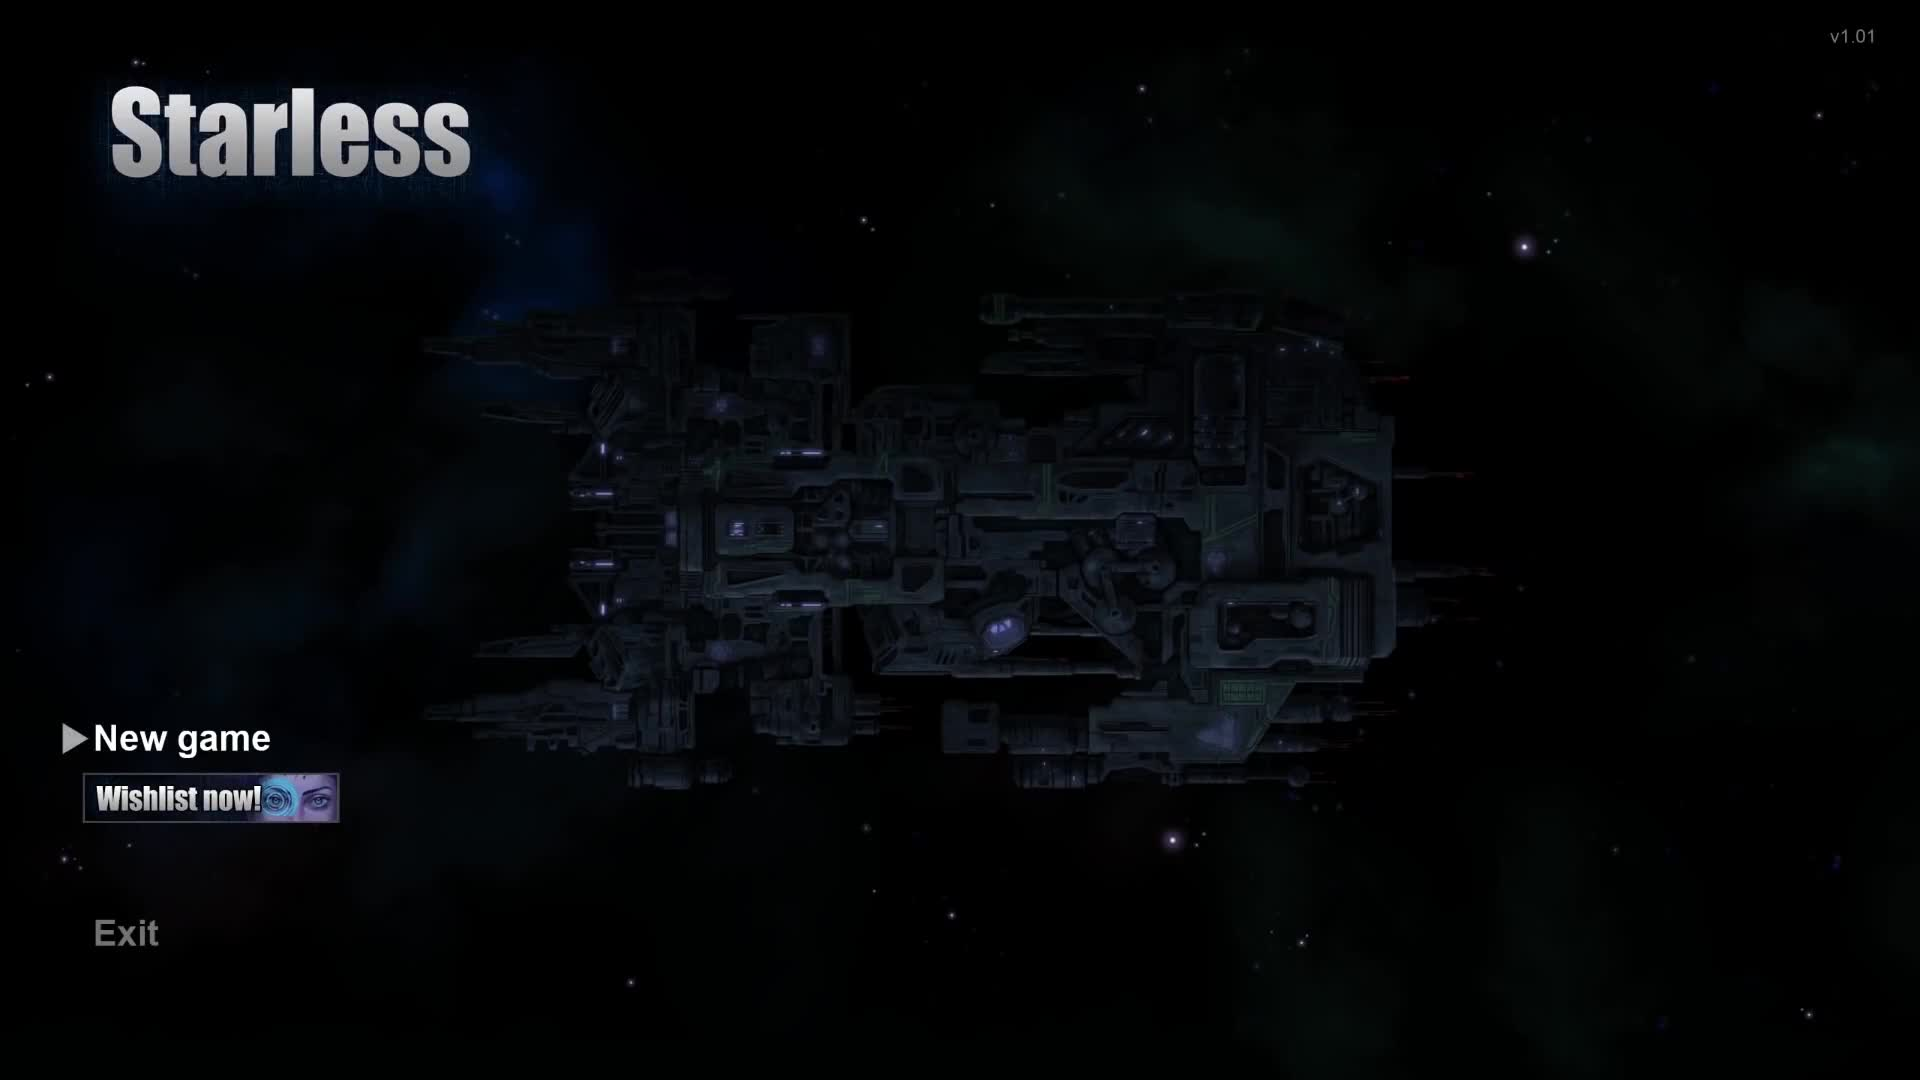 This Space Survival Game Has the MOST BRUTAL DEATHS I have ever seen...